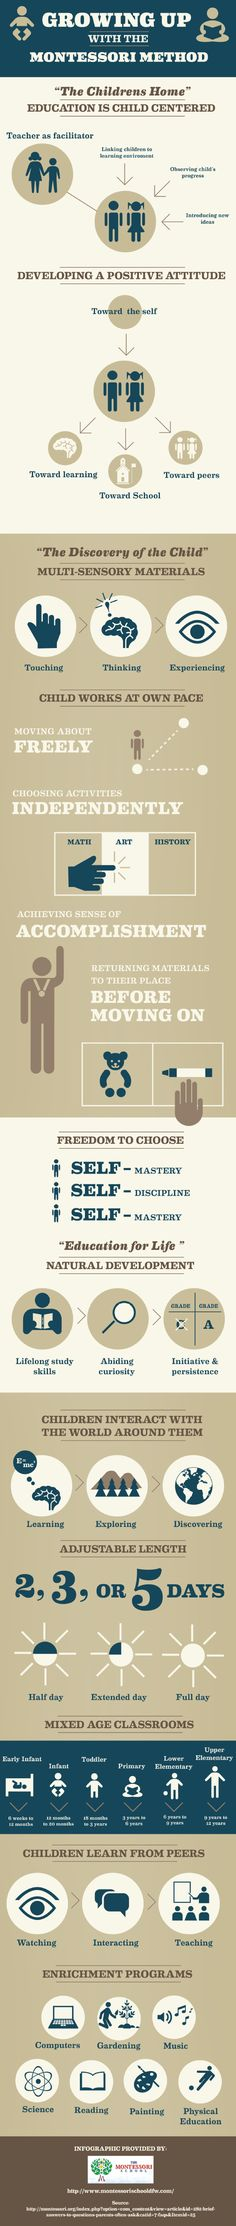 Growing Up with the Montessori Method Infographic